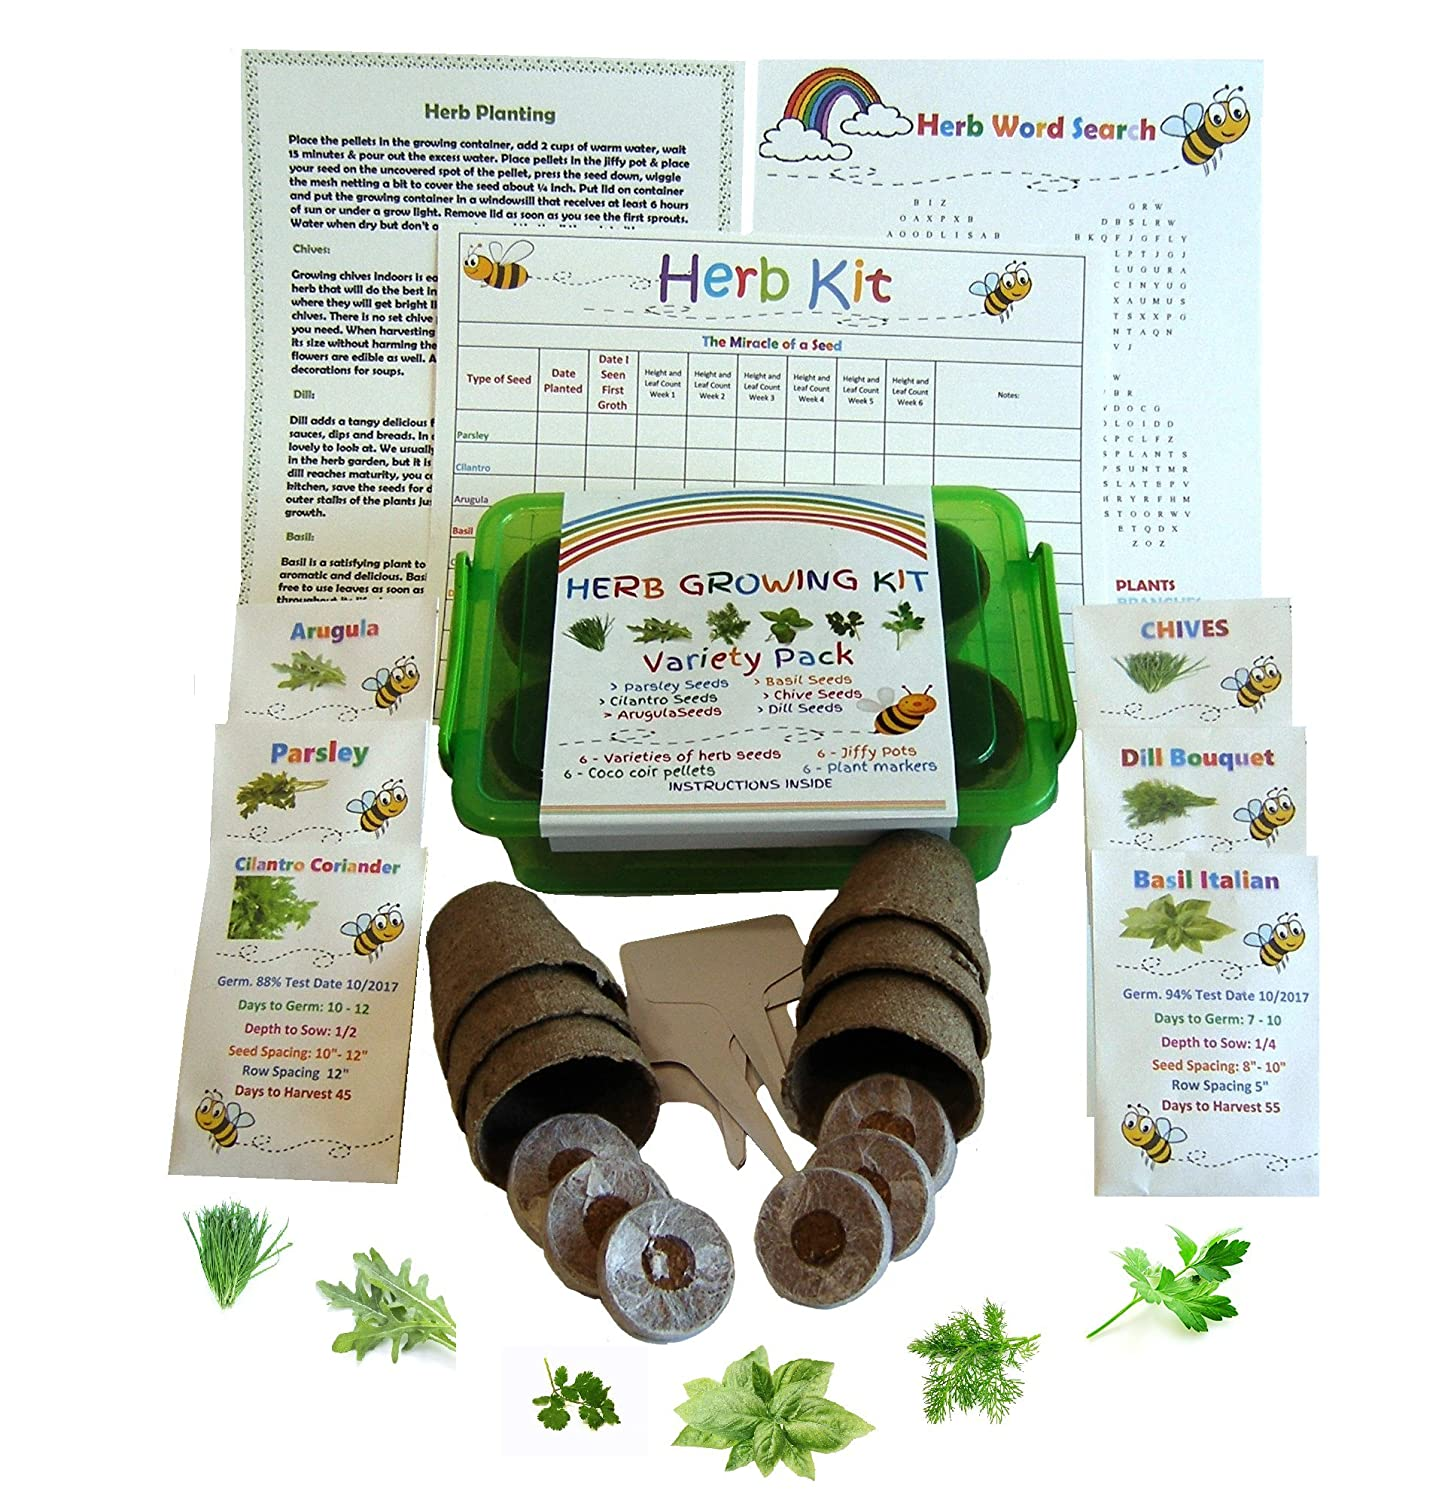 Kids Garden Herb Kit-Grow 6 Herbs Set Contains Everything you Need- 6 Differant Seeds, Pellets, Jiffy Pots, Plant Markers, Grow Container, Grow Chart and Instructions